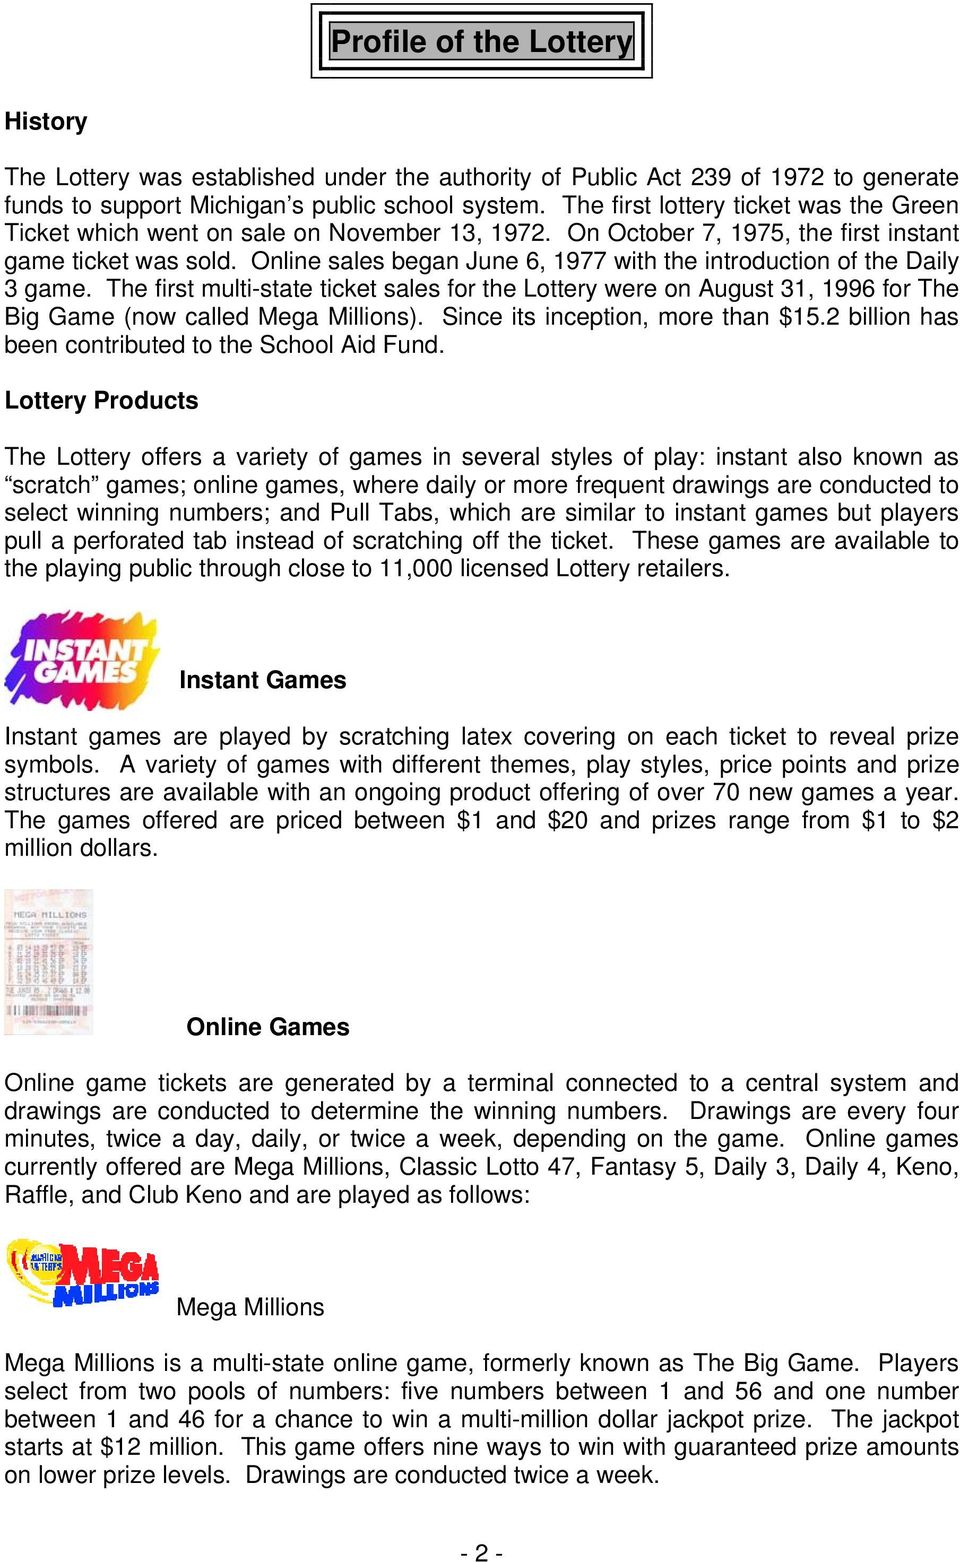 Lottery Support Is All Over the State! - PDF